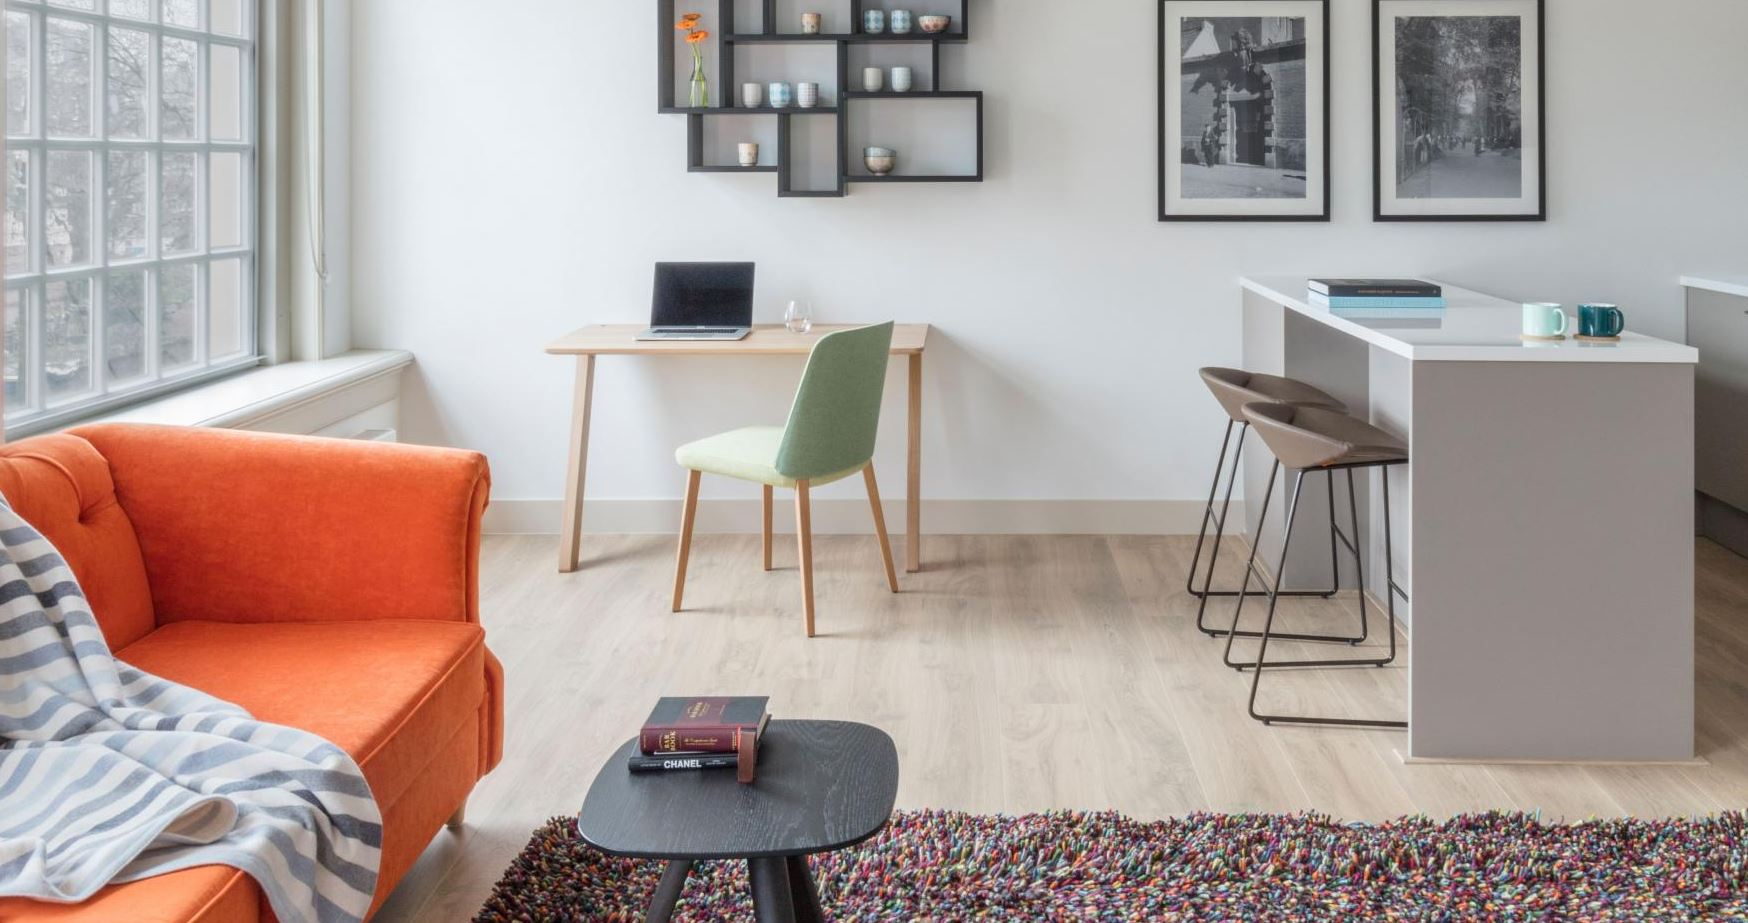 Desk area at The Wittenberg Apartments, Amsterdam